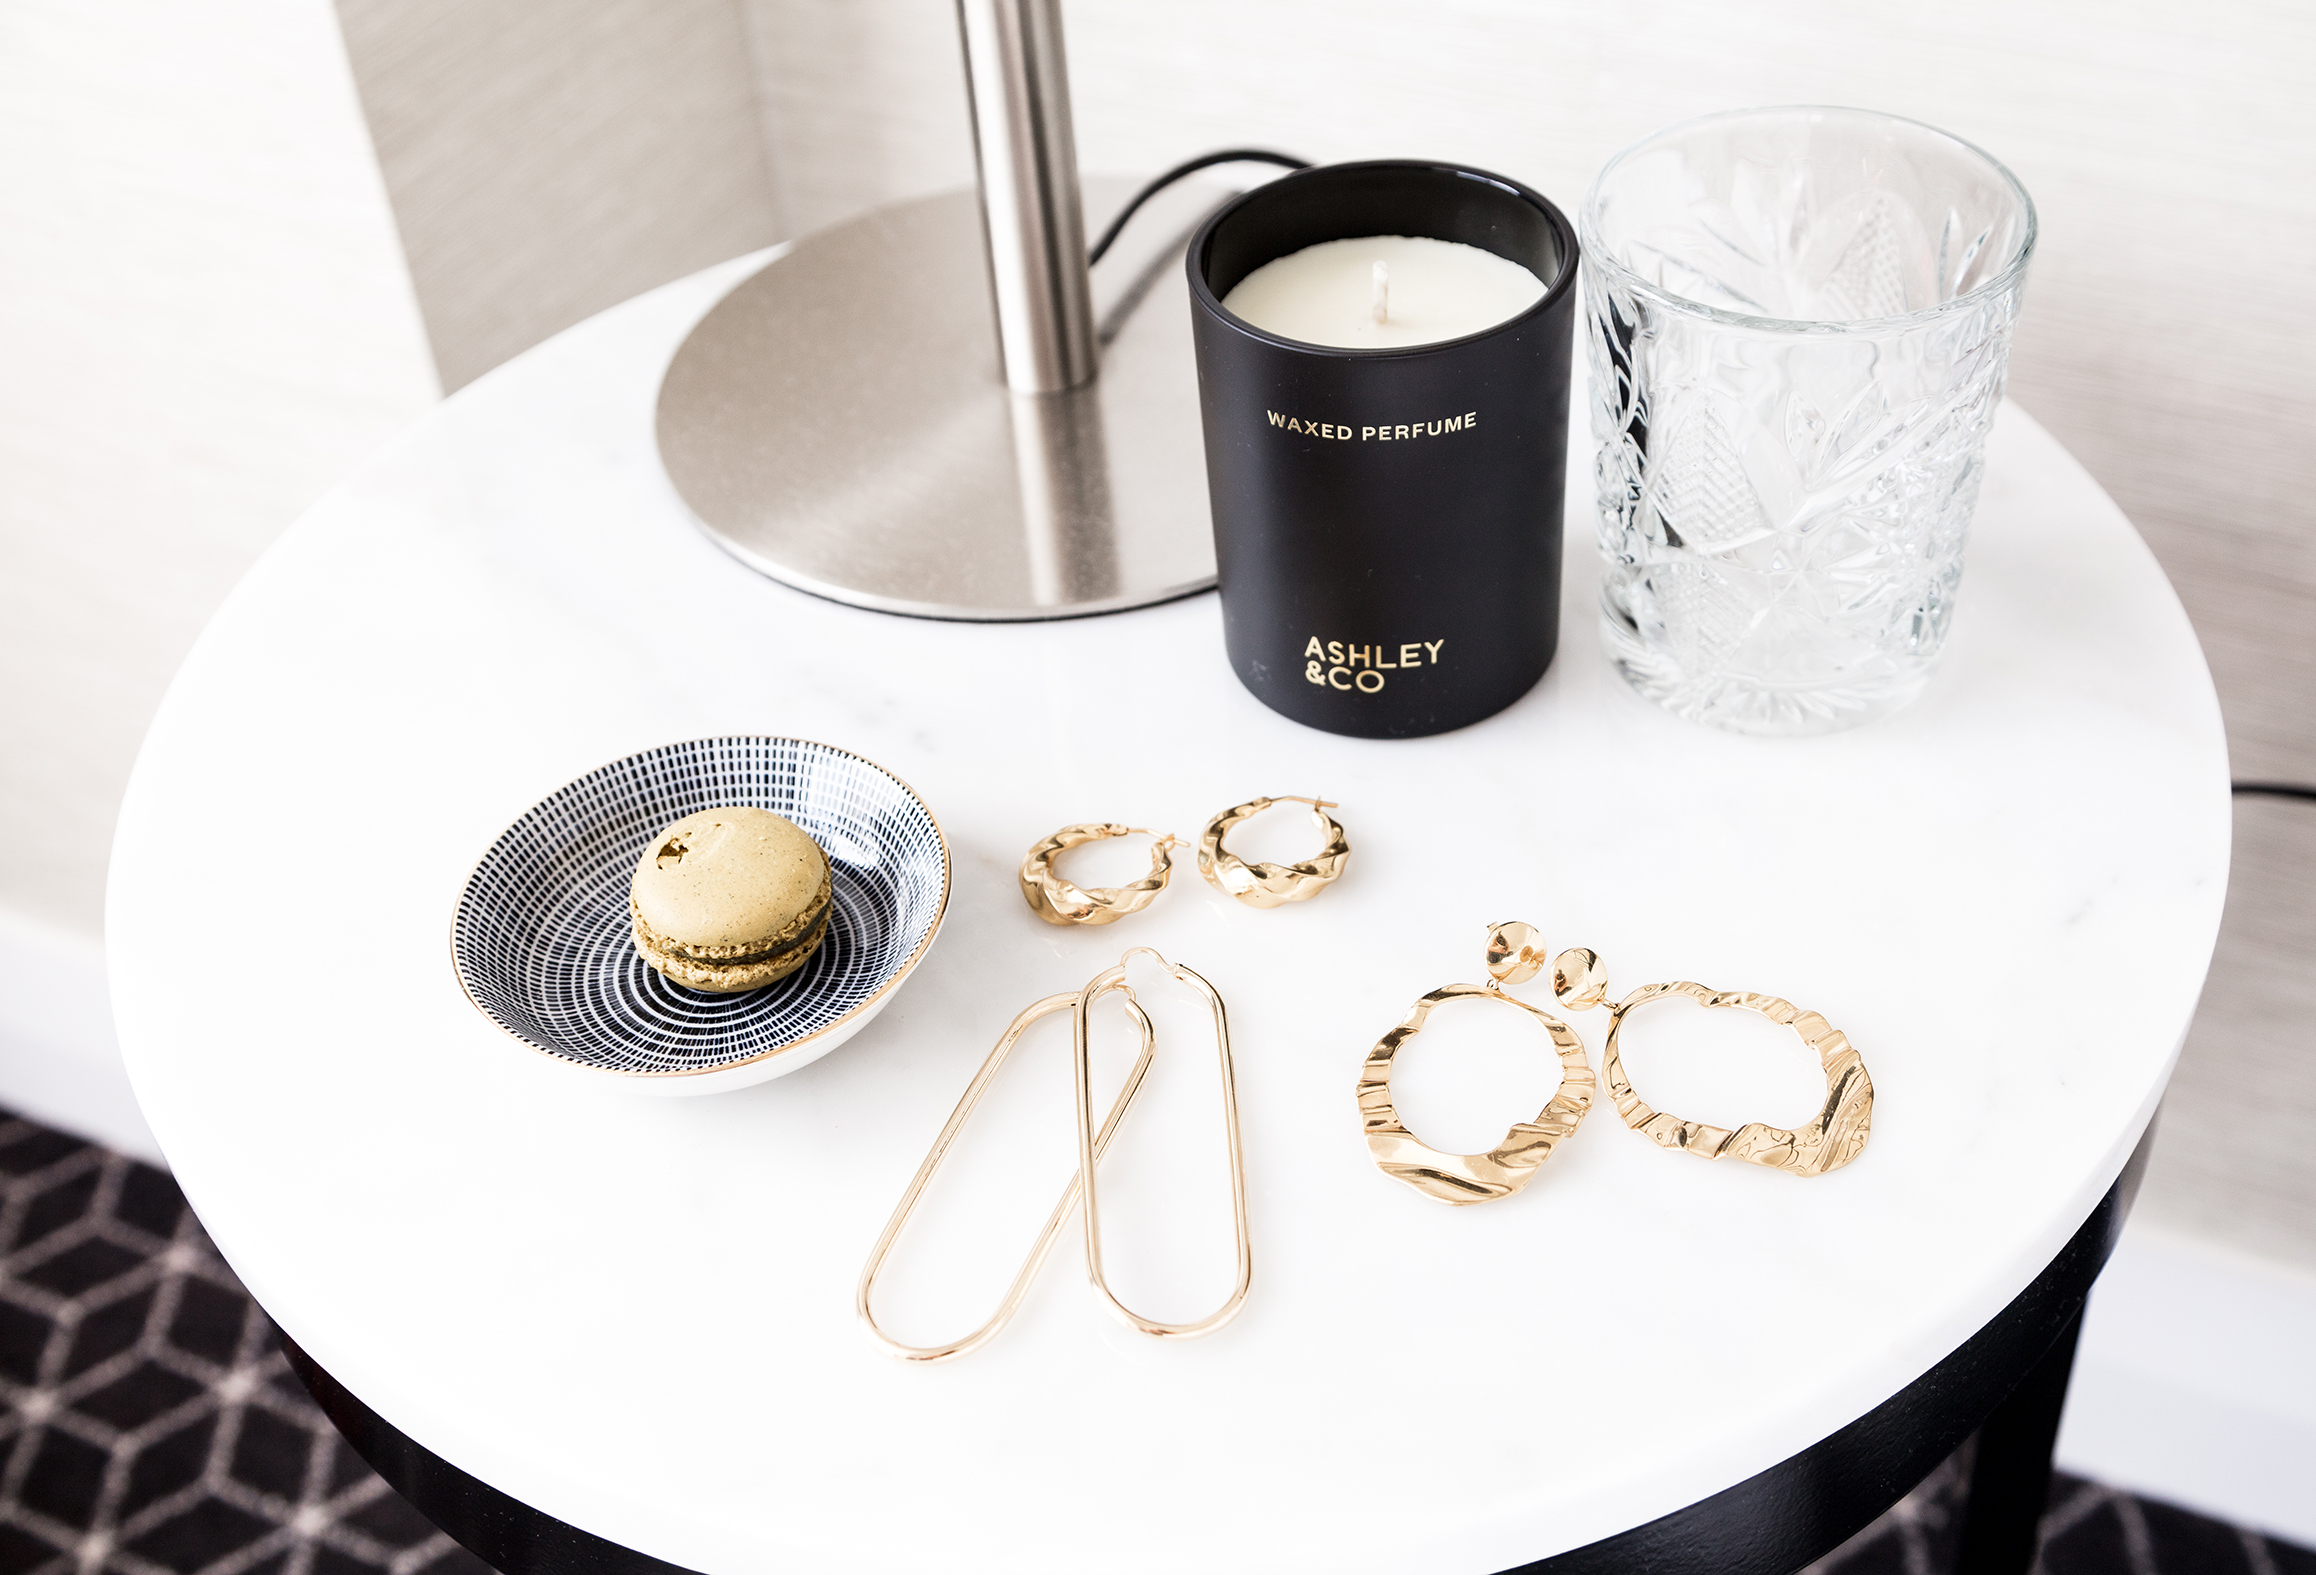 Crystalware and surprise snacks left by housekeeping. Textured earrings by  Flash  releasing October, elongated hoops by Jasmin Sparrow coming to  Maker's Mrkt